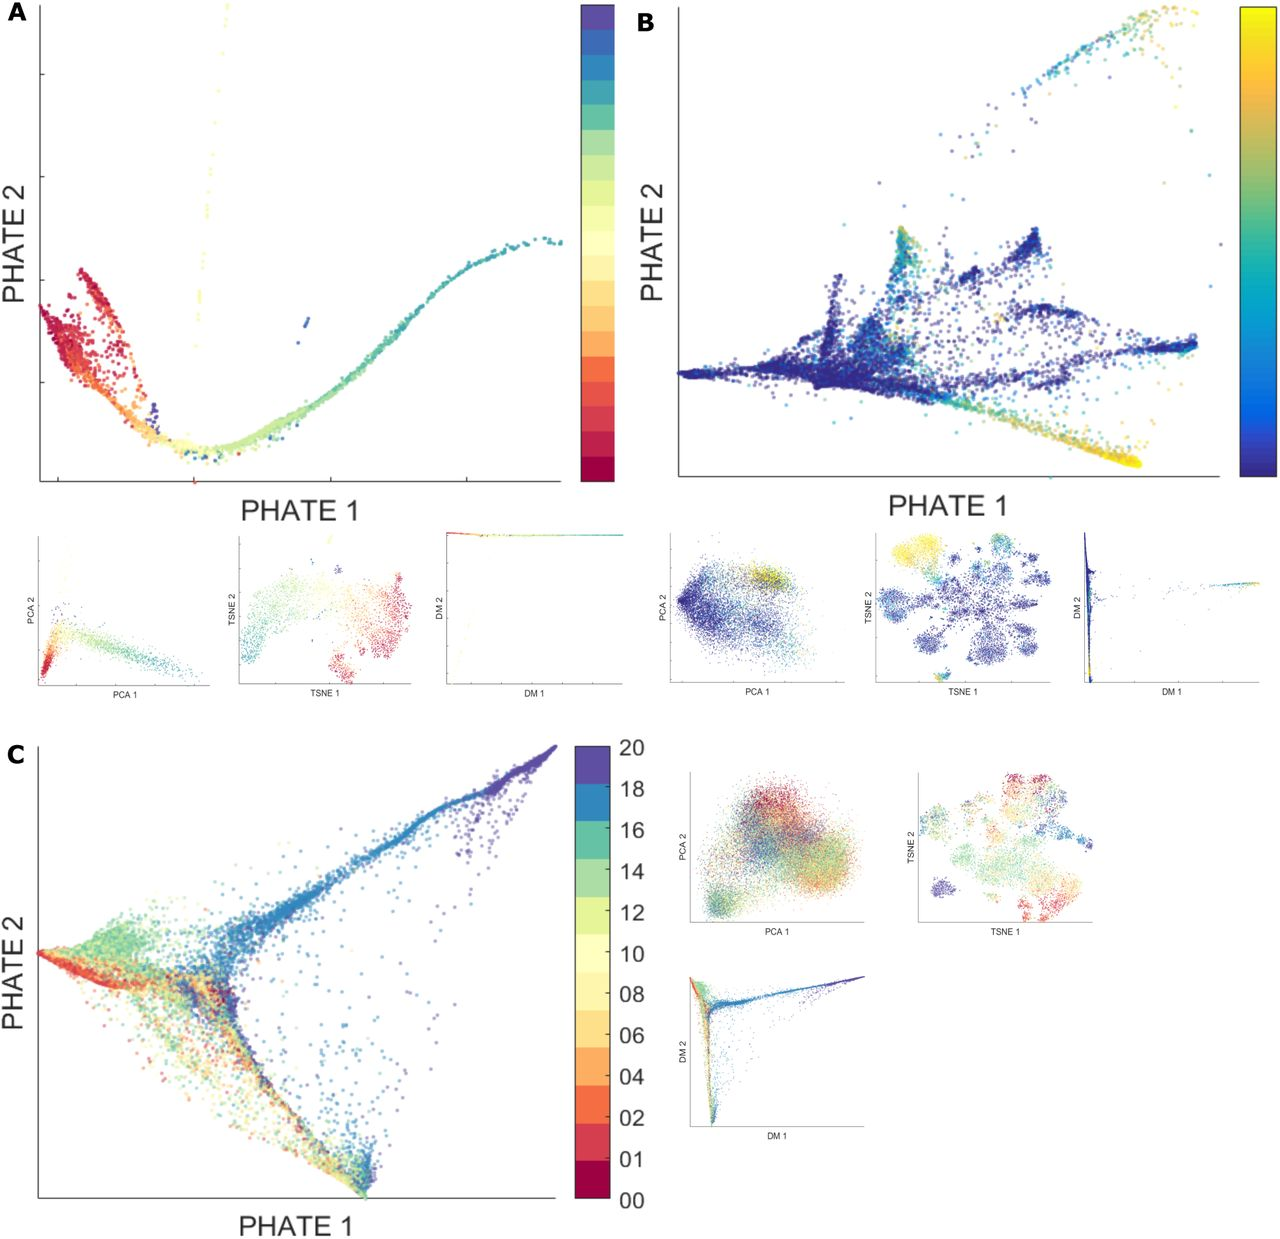 PHATE: A Dimensionality Reduction Method for Visualizing Trajectory ...